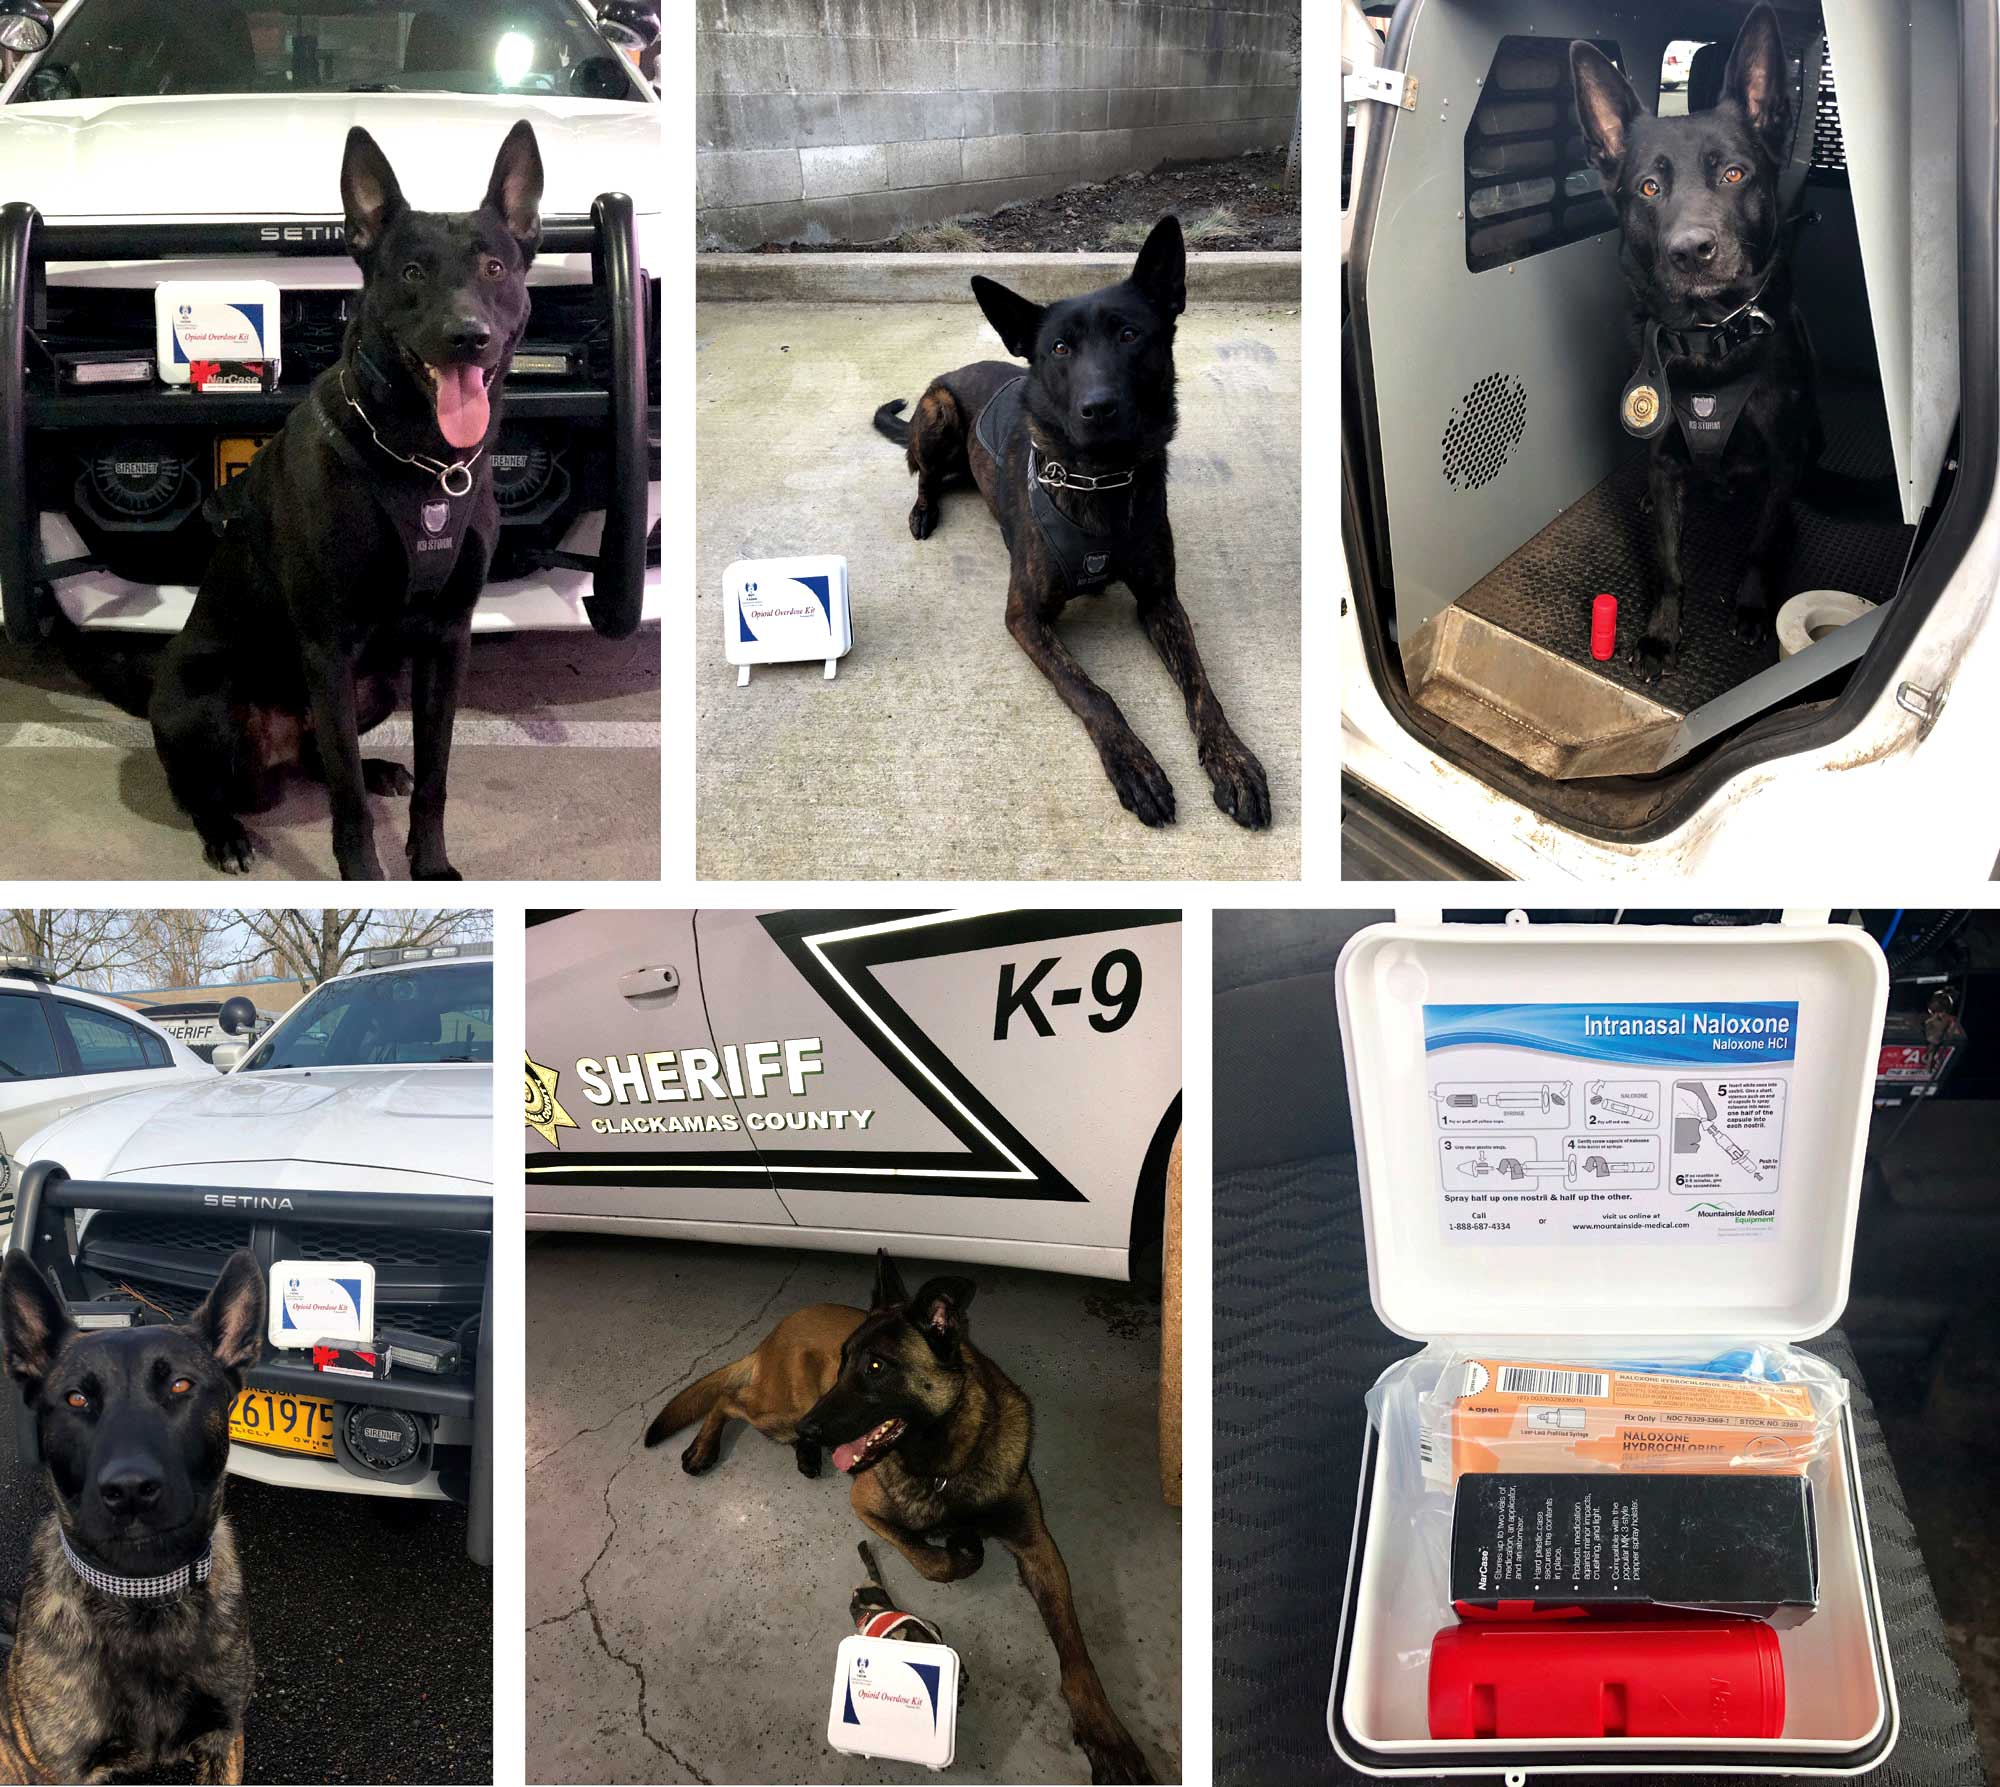 K9s and Narcan